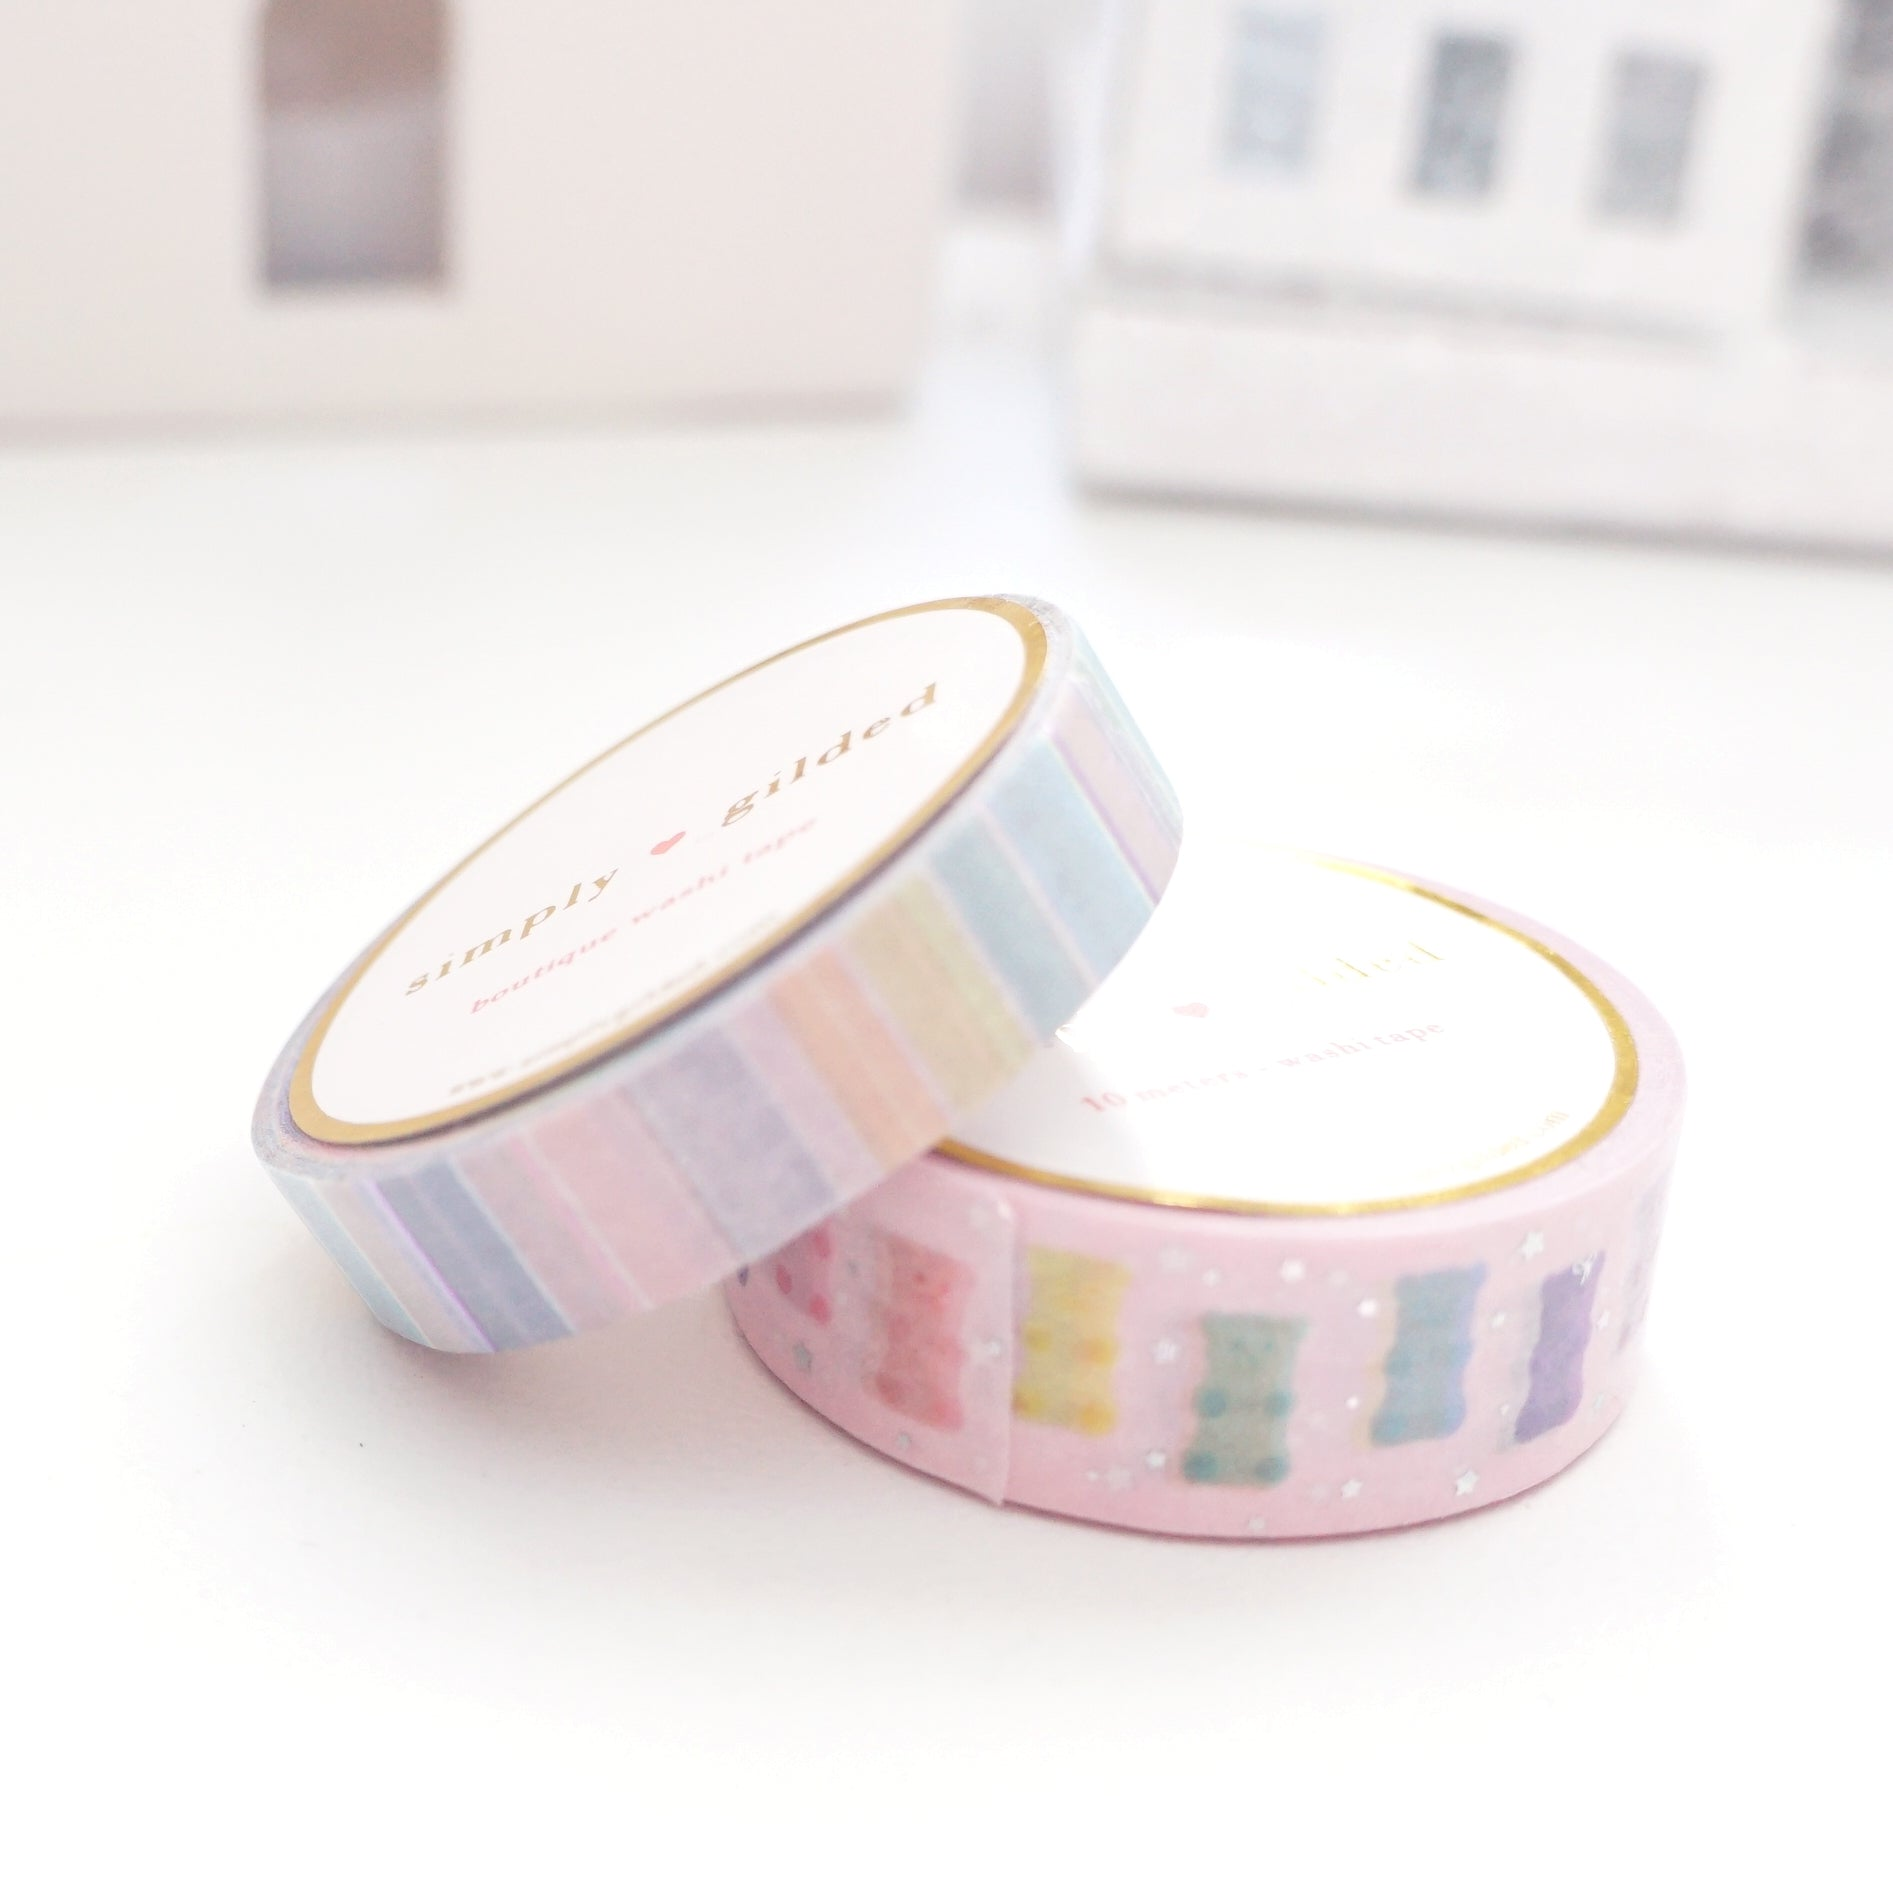 WASHI TAPE 15/10mm set - PASTEL GUMMY BEAR 2.0 & CONFECTIONS STRIPE + holographic silver foil/light purple foil (OOPS)